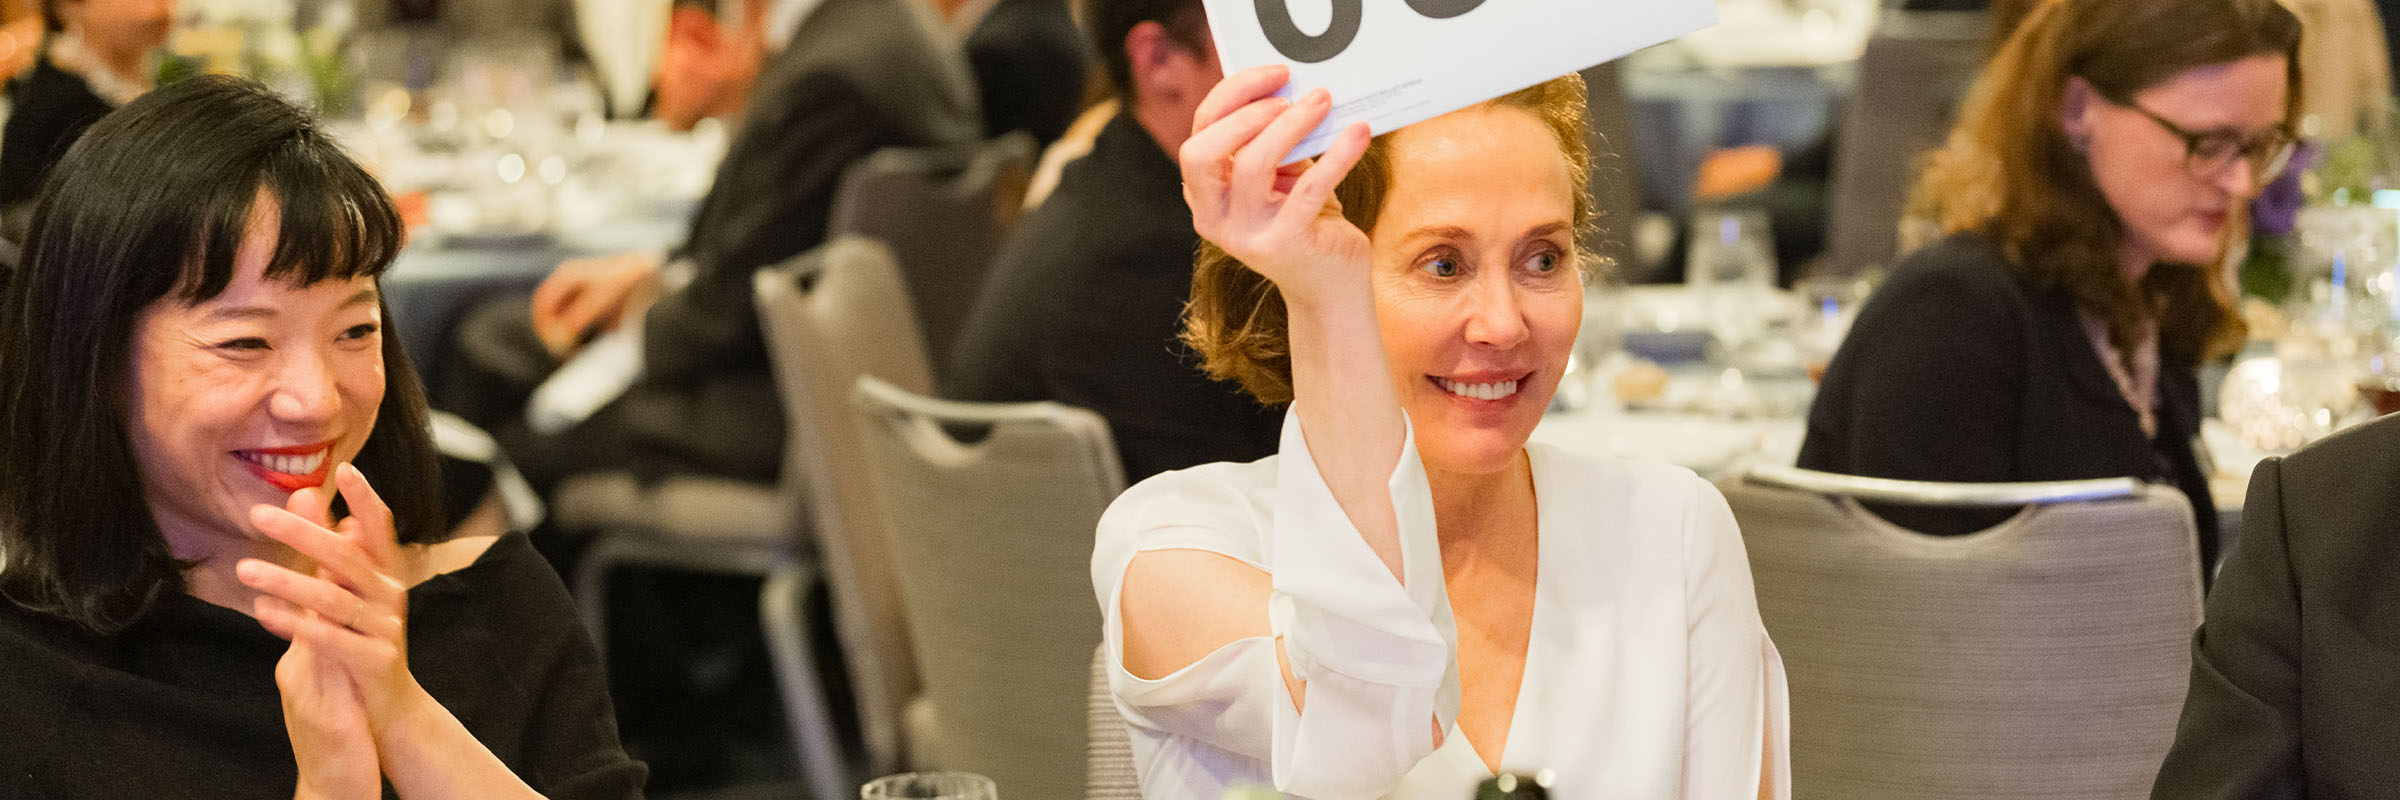 SAN FRANCISCO, CA - May 22 - Atmosphere at SF Ballet School Spring Festival Dinner 2019 on May 22nd 2019 at Four Seasons Hotel in San Francisco, CA (Photo - Susana Bates for Drew Altizer Photography)